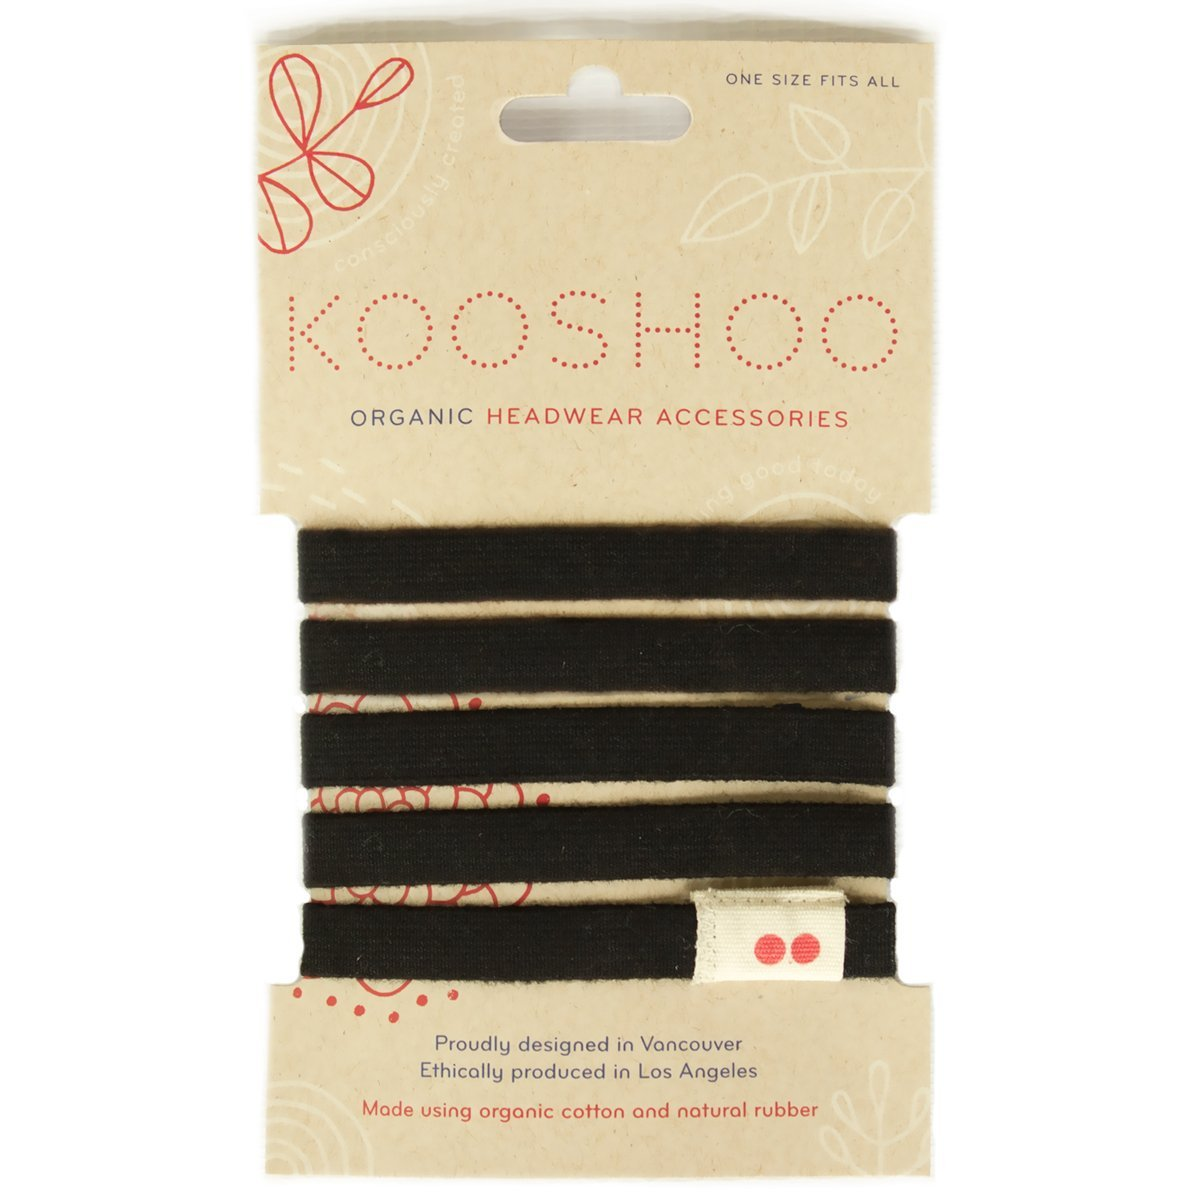 Kooshoo LILA Black Organic Hairties. Top Rated, Ouchless Hair Ties for Women and Men. Long Lasting, Made in USA Organic Cotton Ponytail Holders.